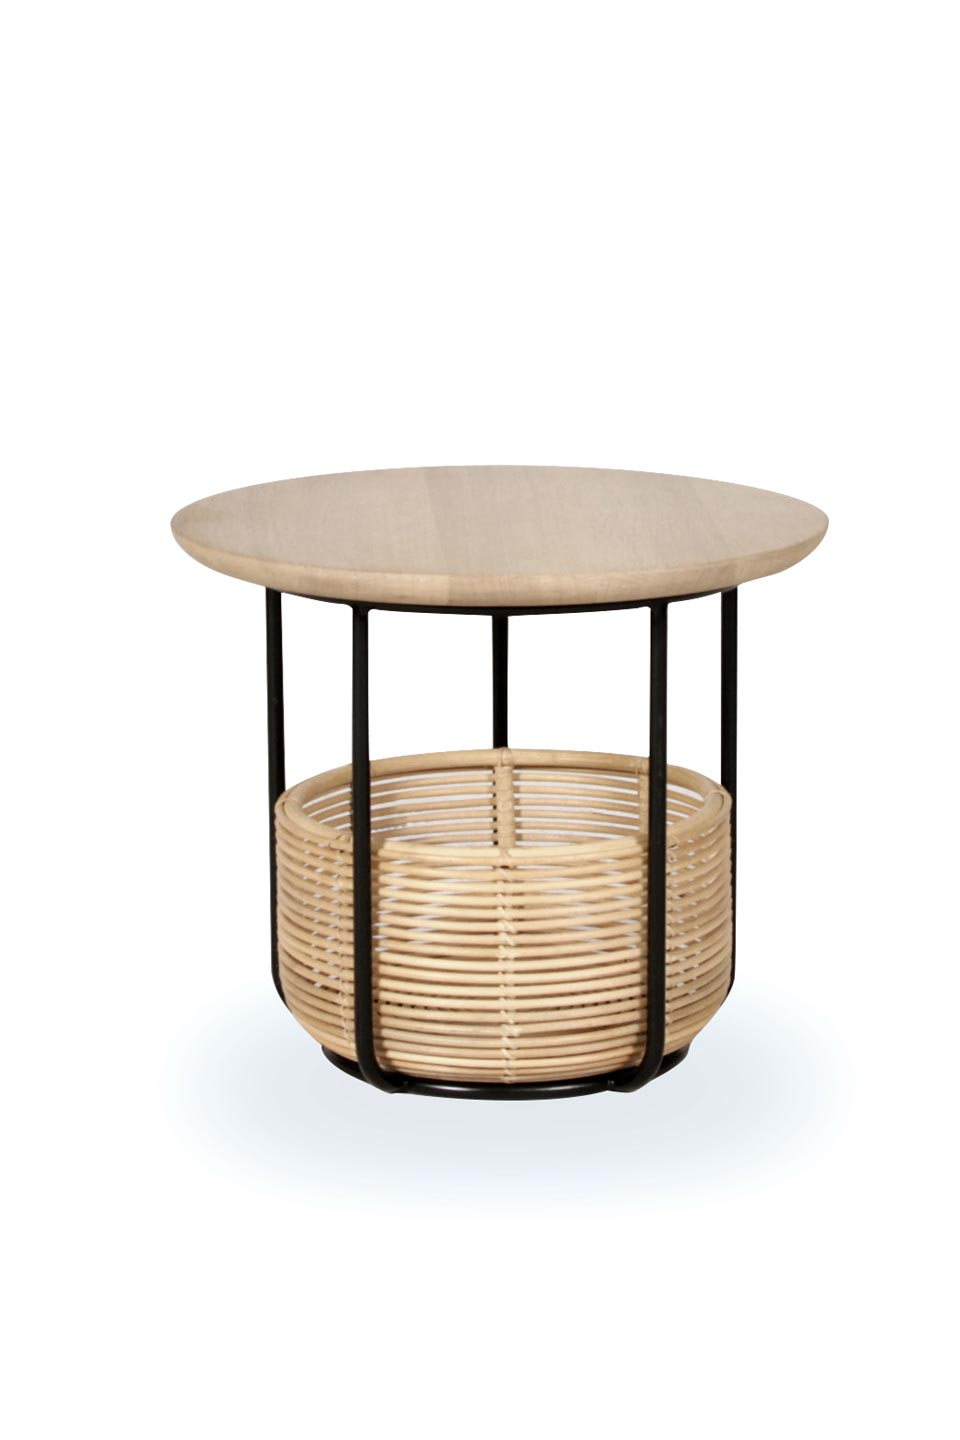 Vivi Small Table And Basket In Black Metal And Rattan Vincent Sheppard Contemporary Design Lighting Ref 18110063